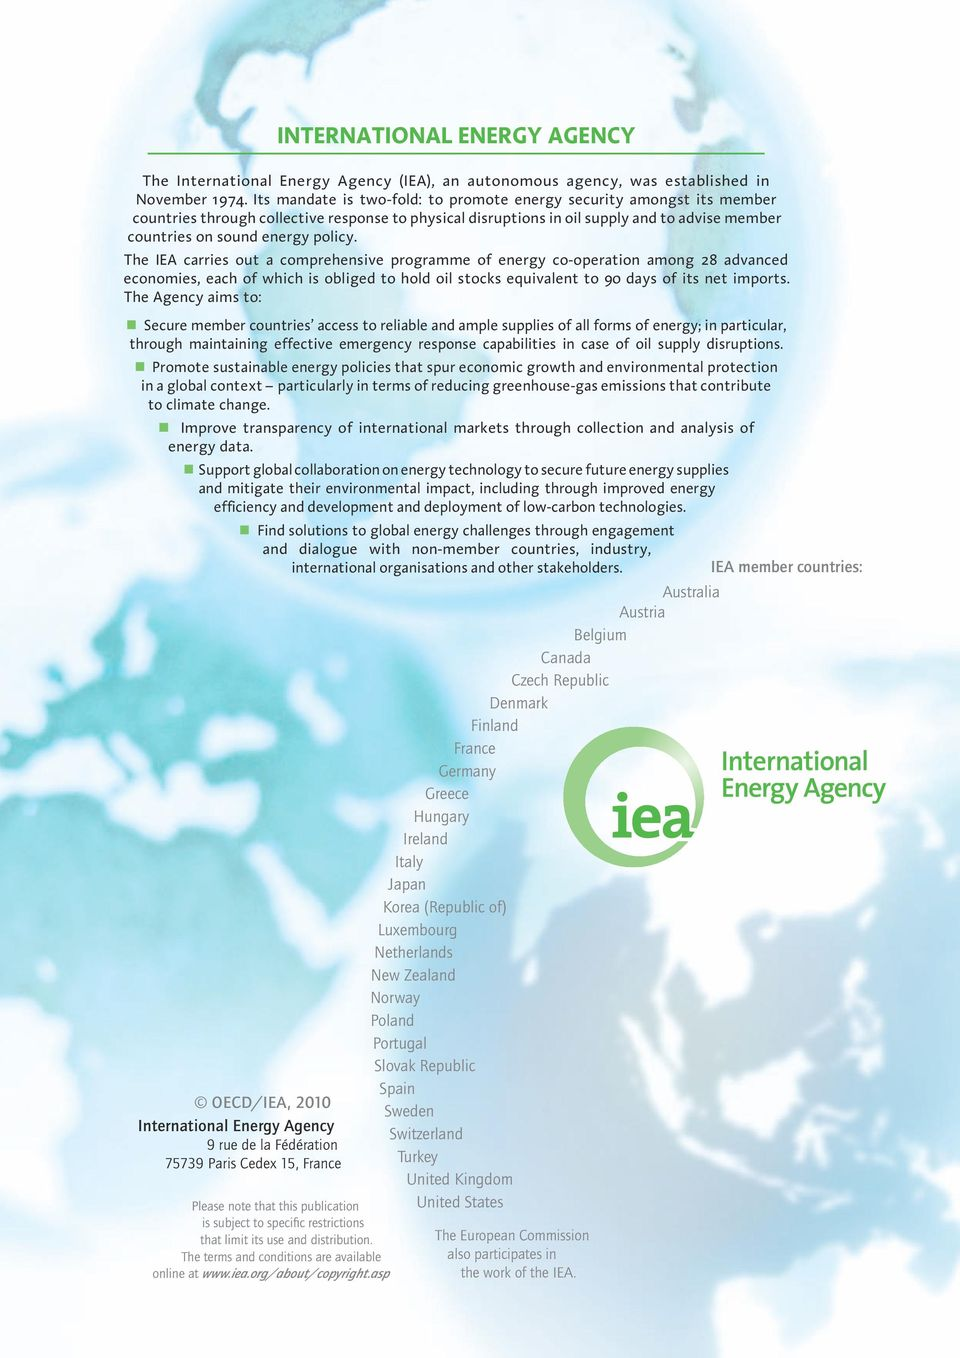 policy. The IEA carries out a comprehensive programme of energy co-operation among 28 advanced economies, each of which is obliged to hold oil stocks equivalent to 90 days of its net imports.